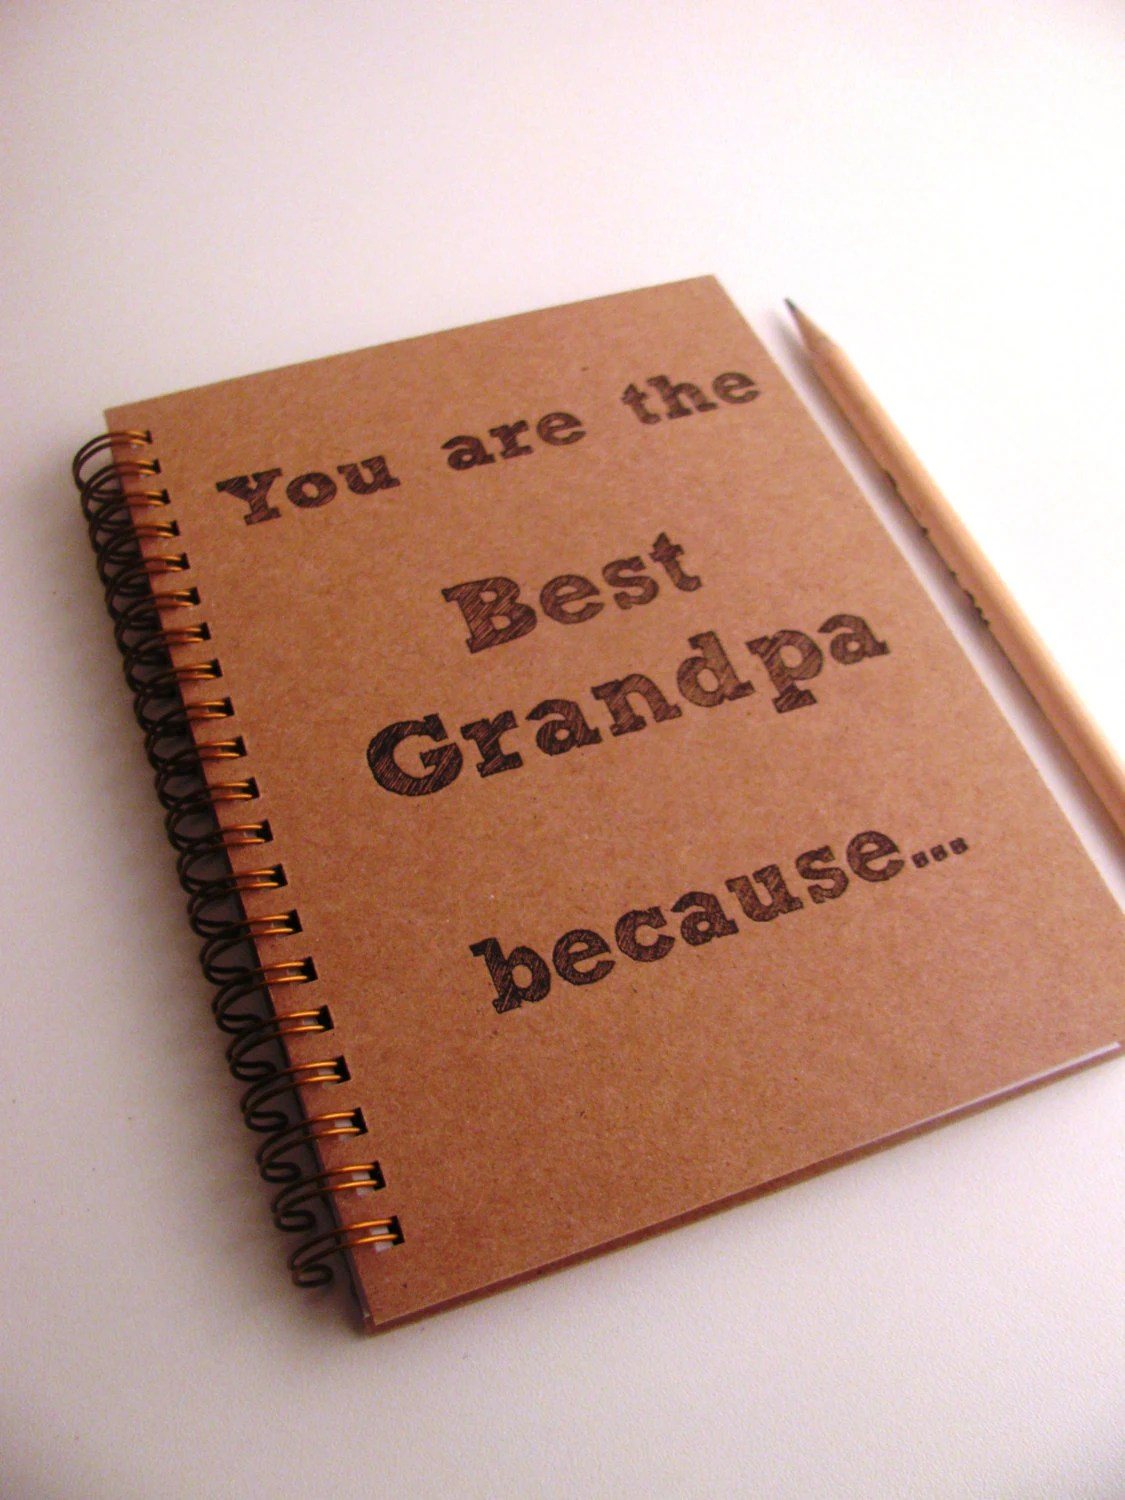 You are the Best Grandpa because... - Letter pressed 5.25 x 7.25 inch journal